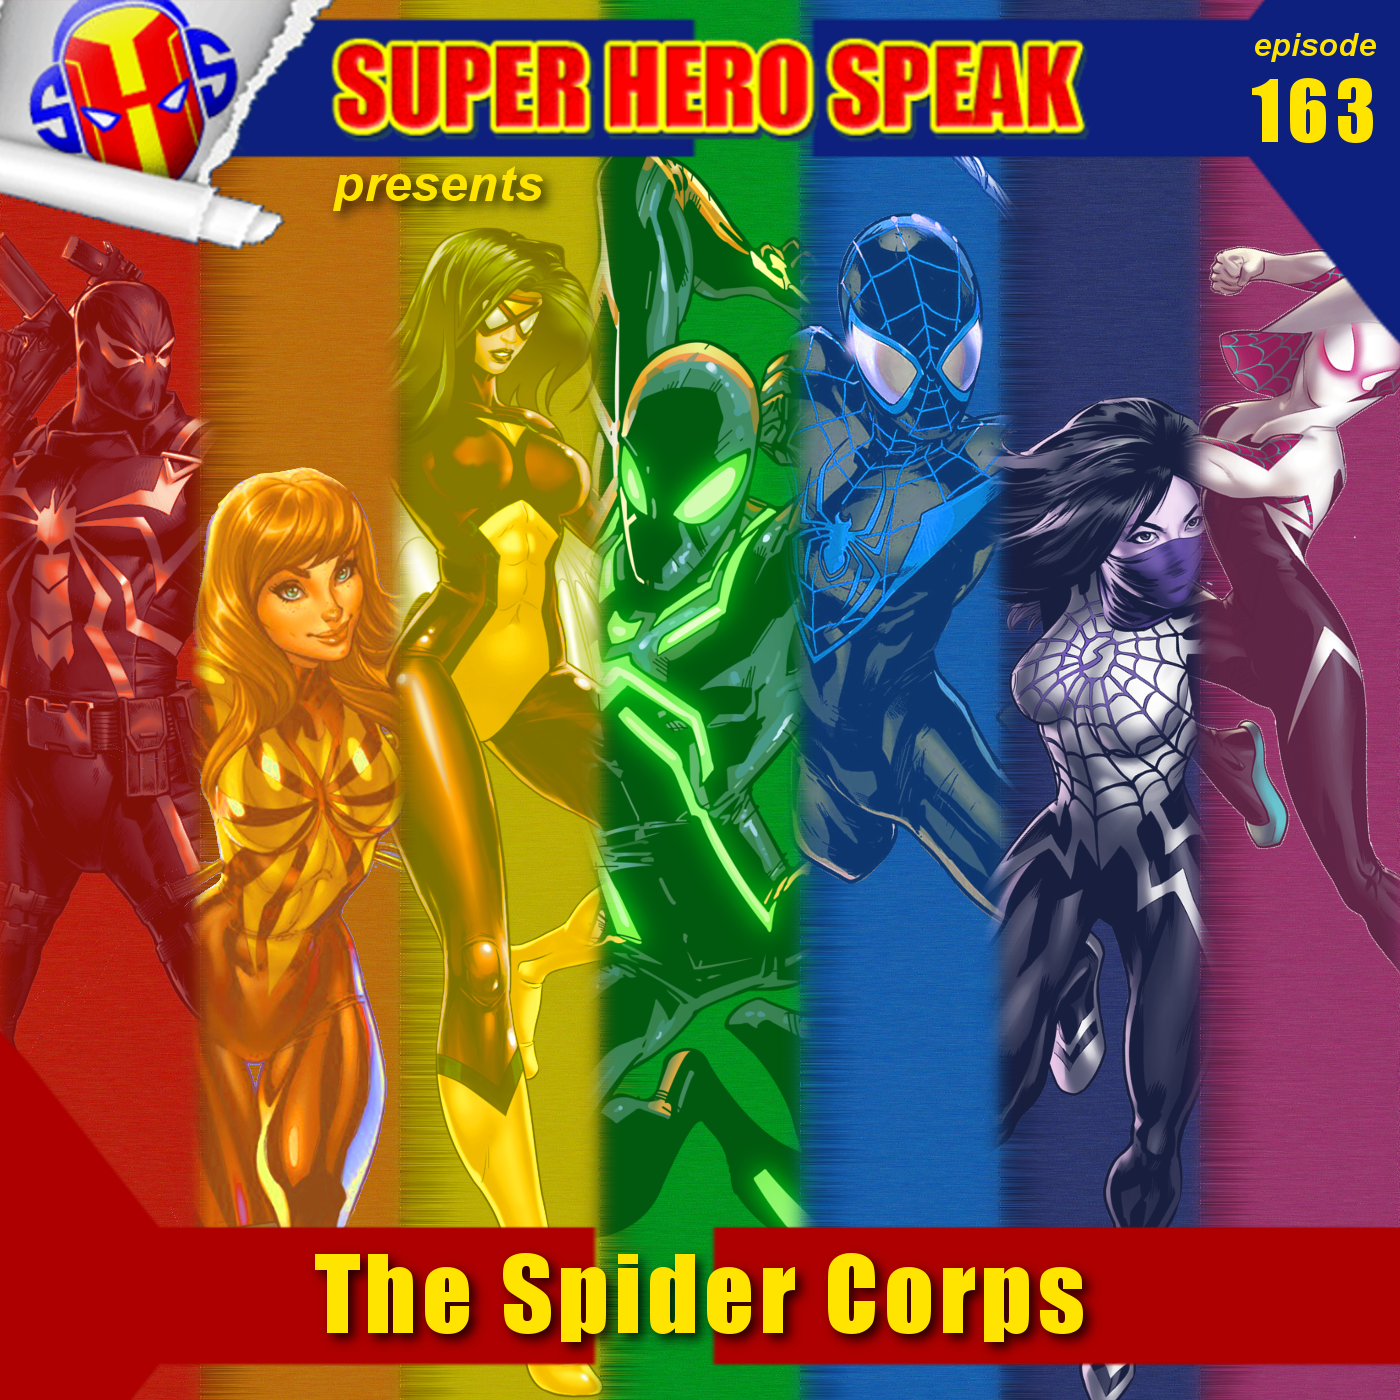 #163: The Spider Corps